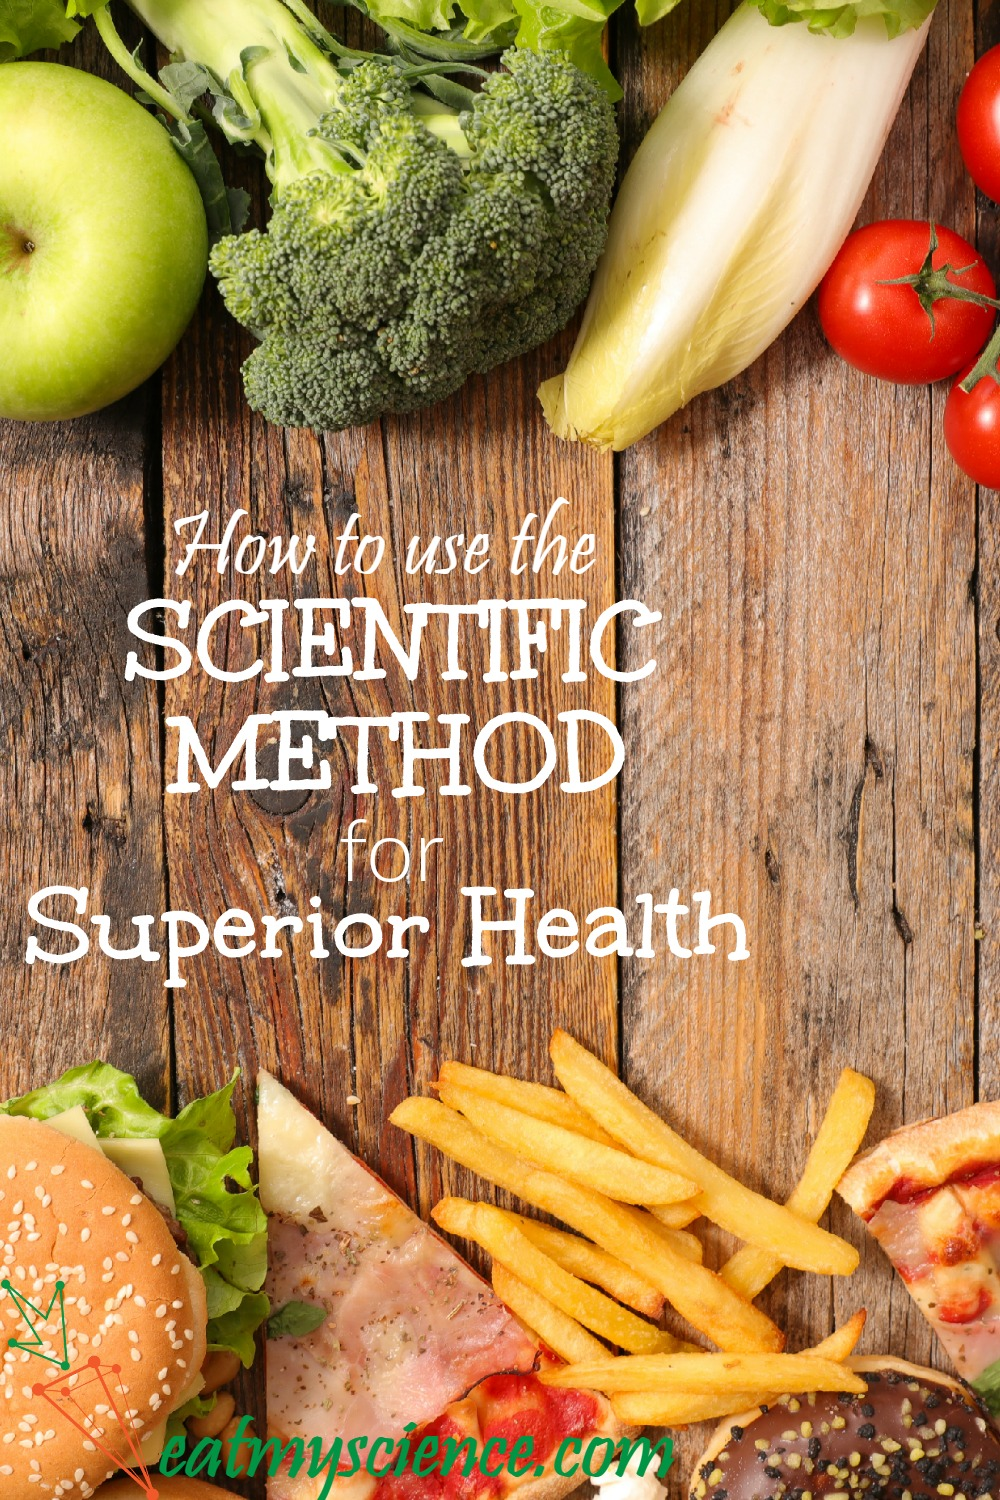 You can apply the scientific method to your daily eating patterns to find your perfect diet